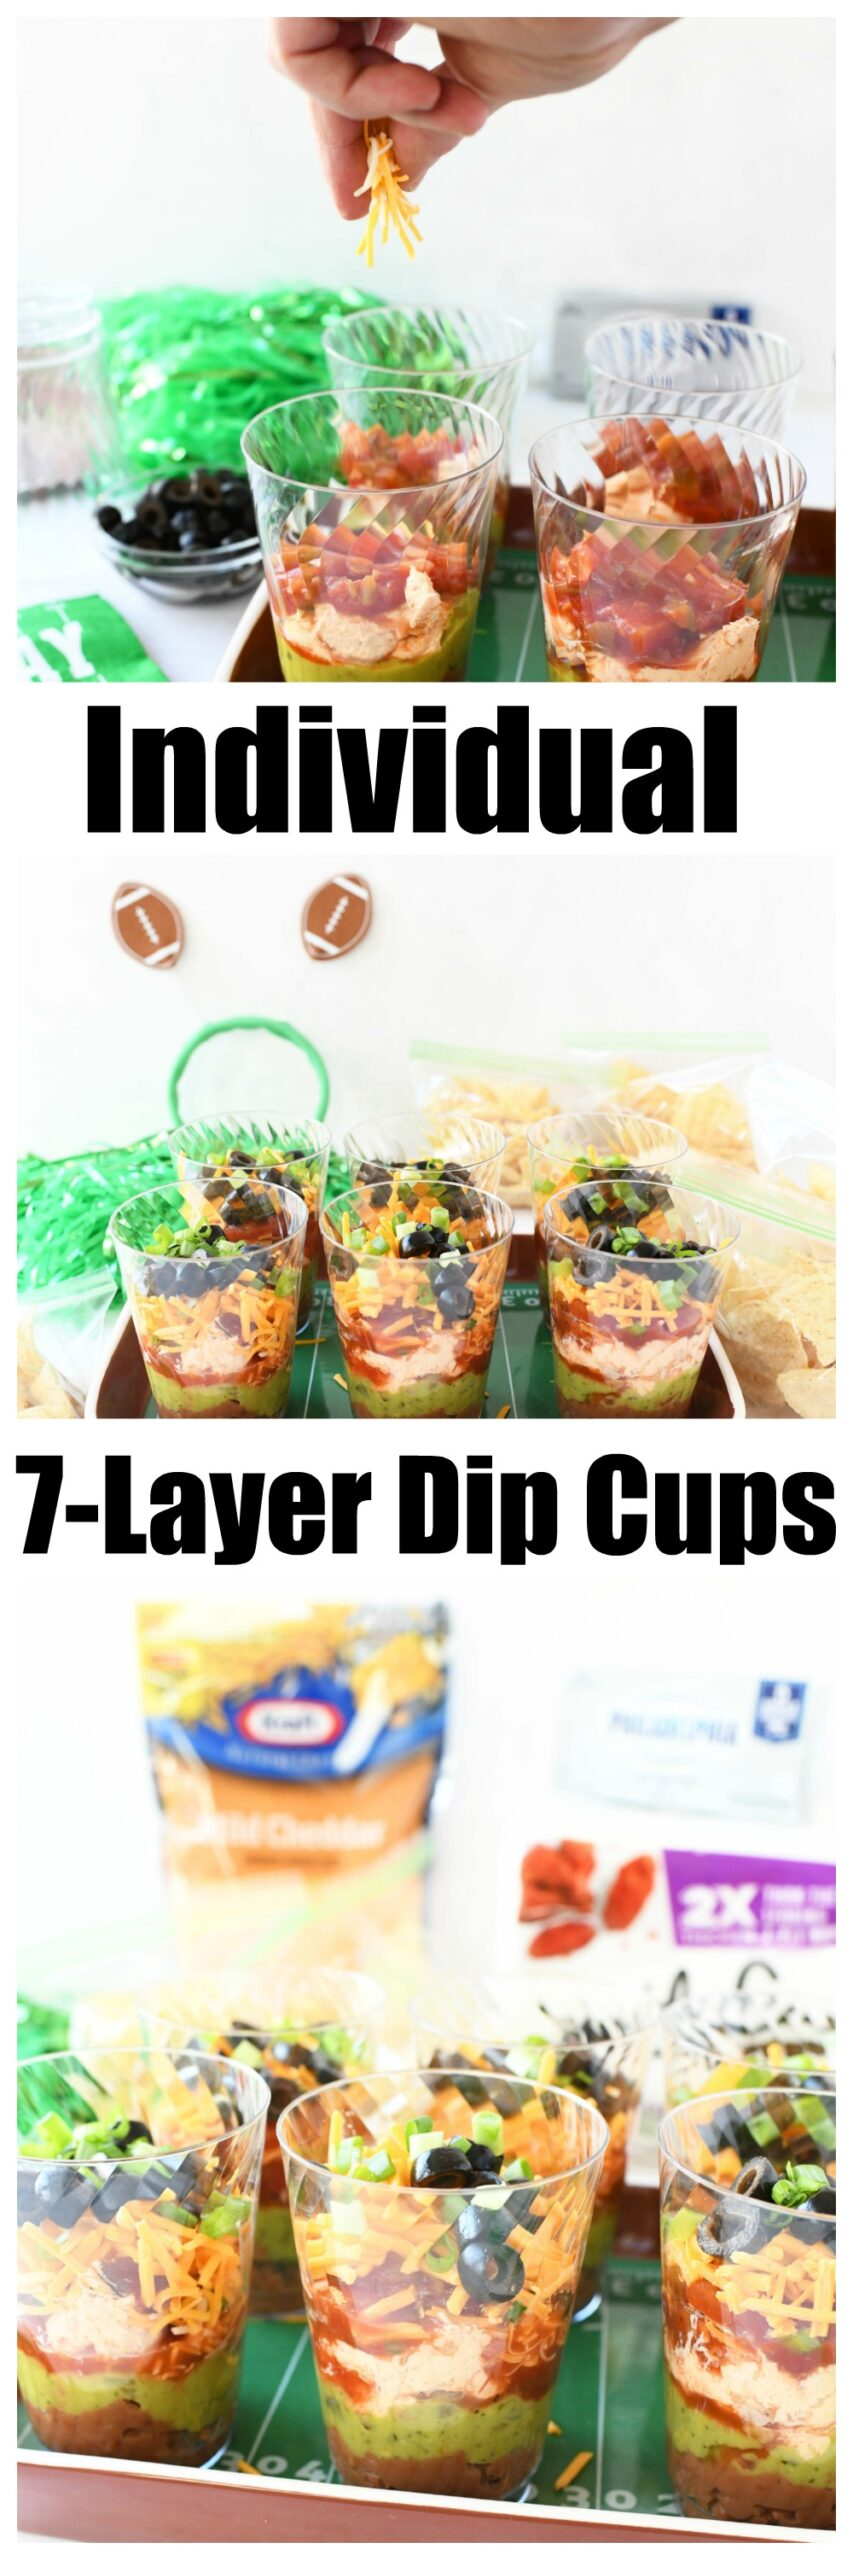 7-Layer Game Day Individual Dip Cups